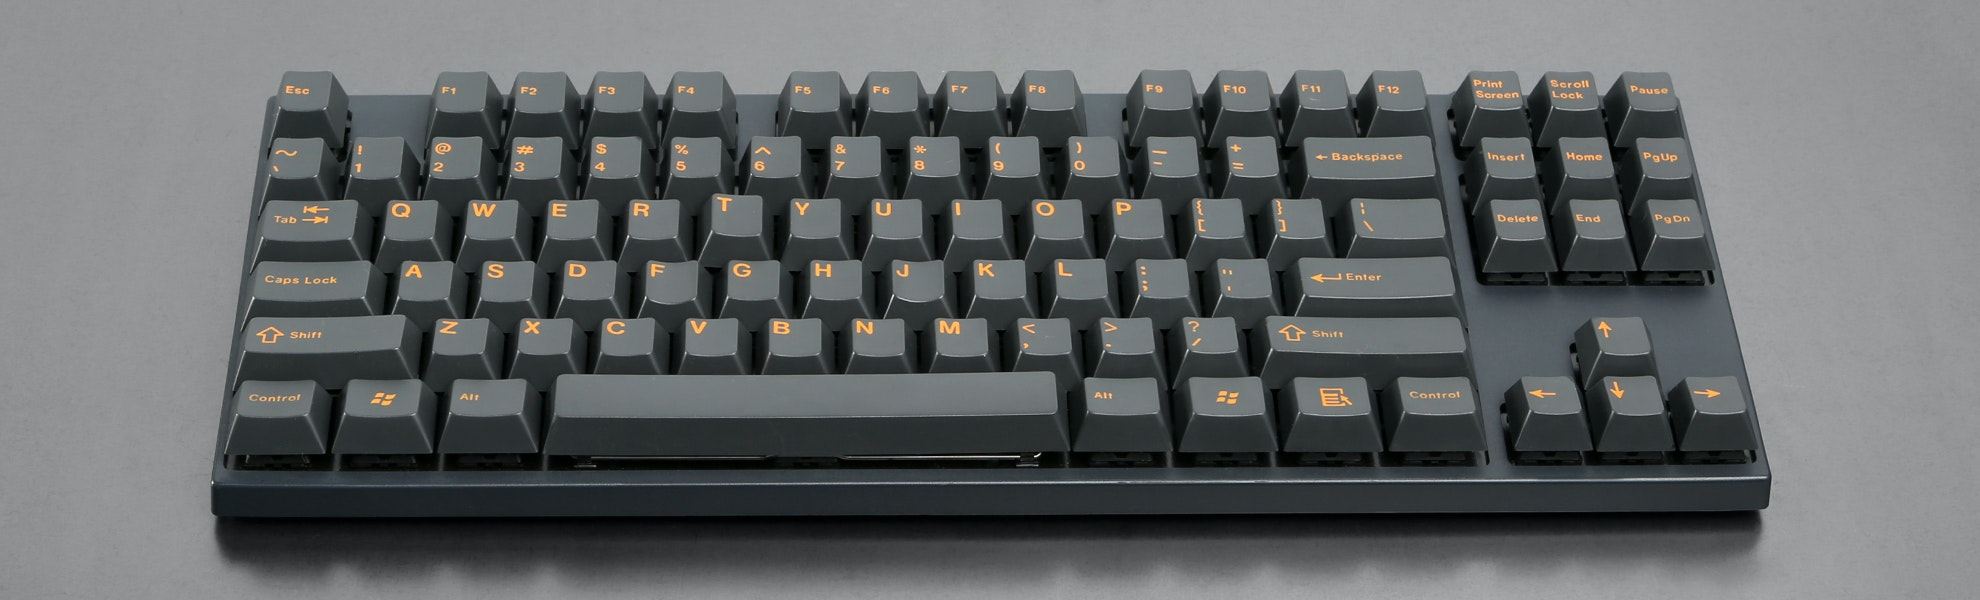 Originative GMK Keycap Sets